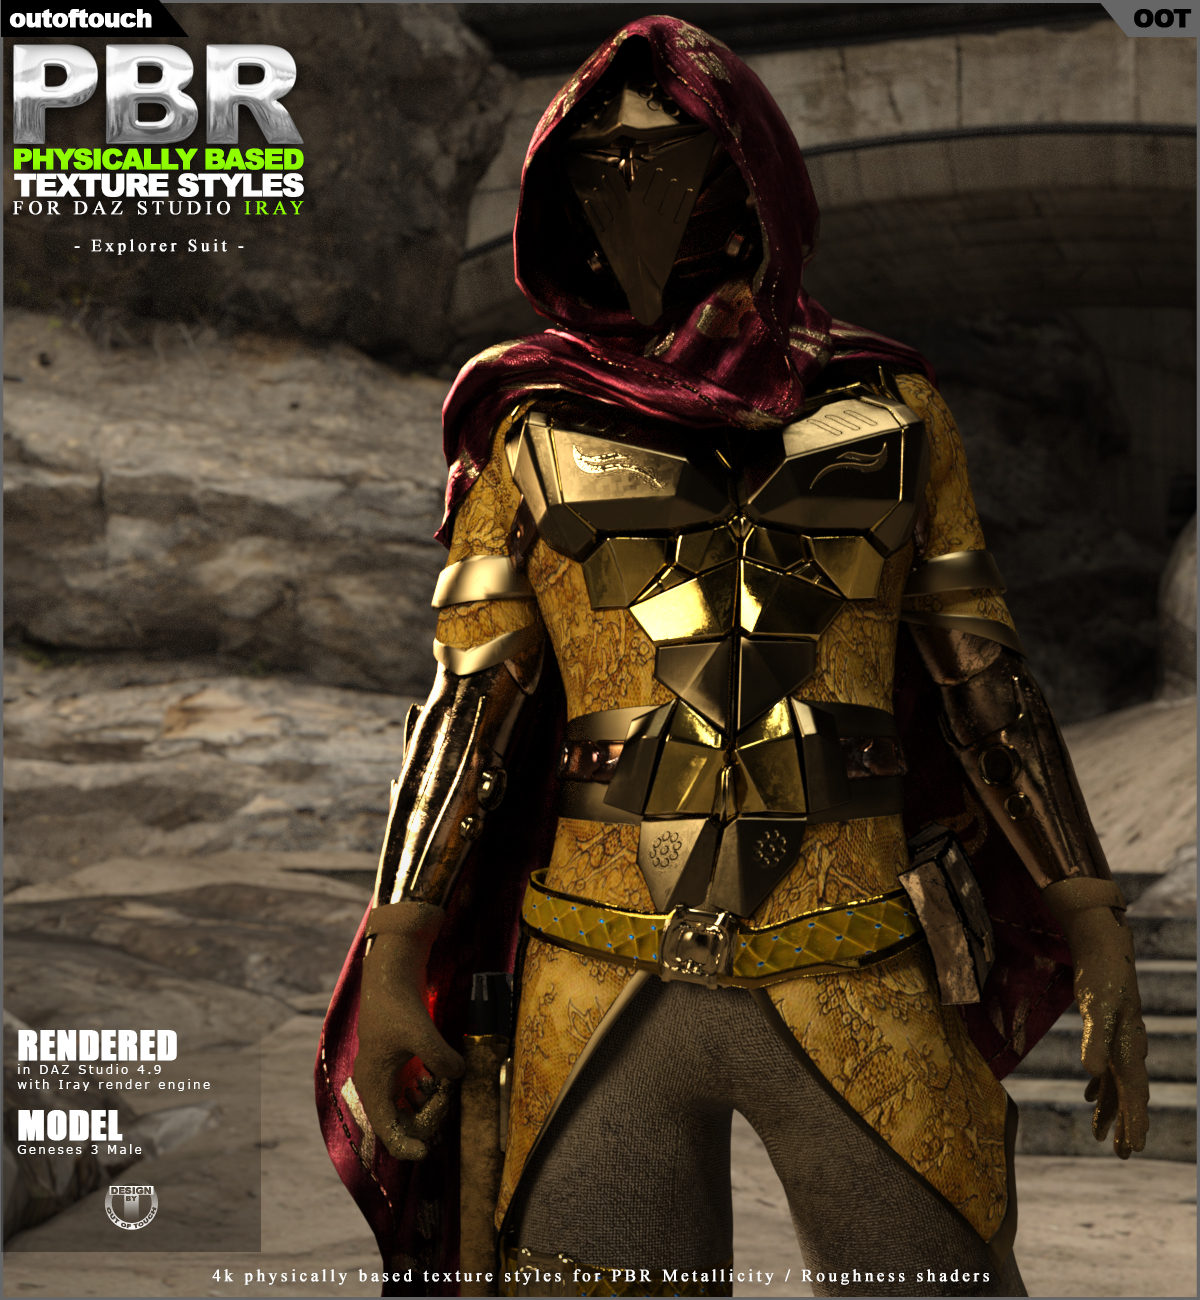 OOT PBR Texture Styles for Explorer Suit